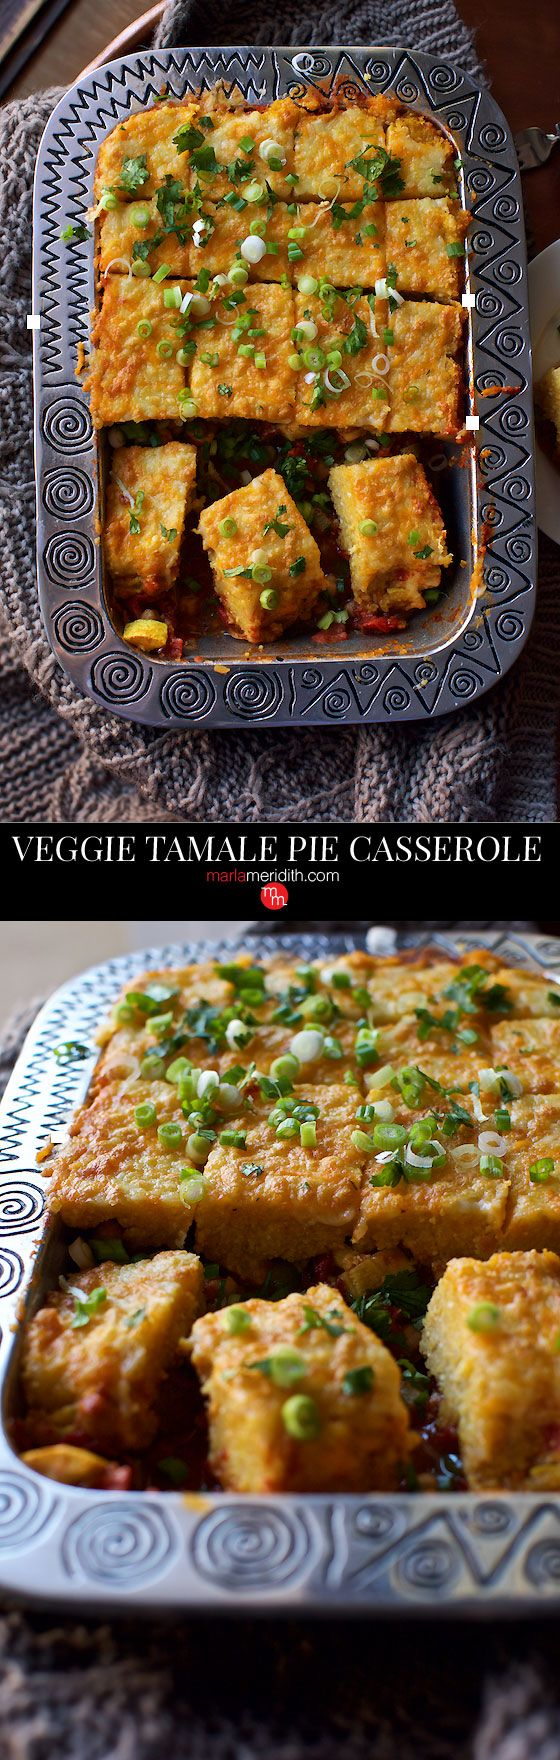 Veggie Tamale Pie Casserole #recipe is a family favorite! An energy packed, delicious meals! Gluten free too! MarlaMeridith.com ( @marlameridith )